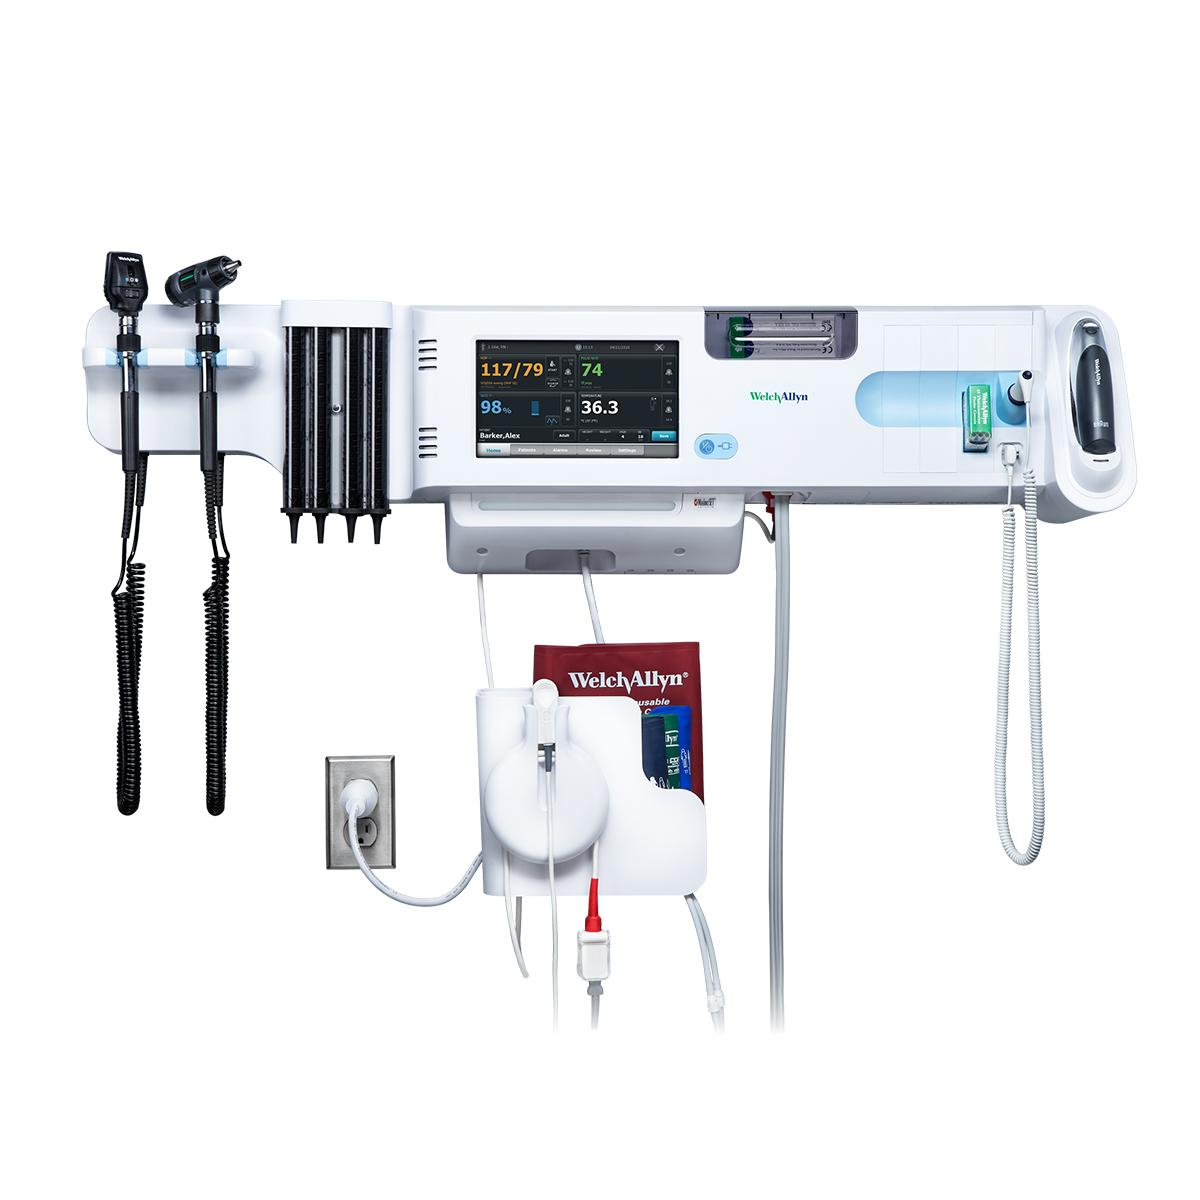 Connex Integrated Wall System, front view, includes both SureTemp oral thermometer and Braun ear thermometer